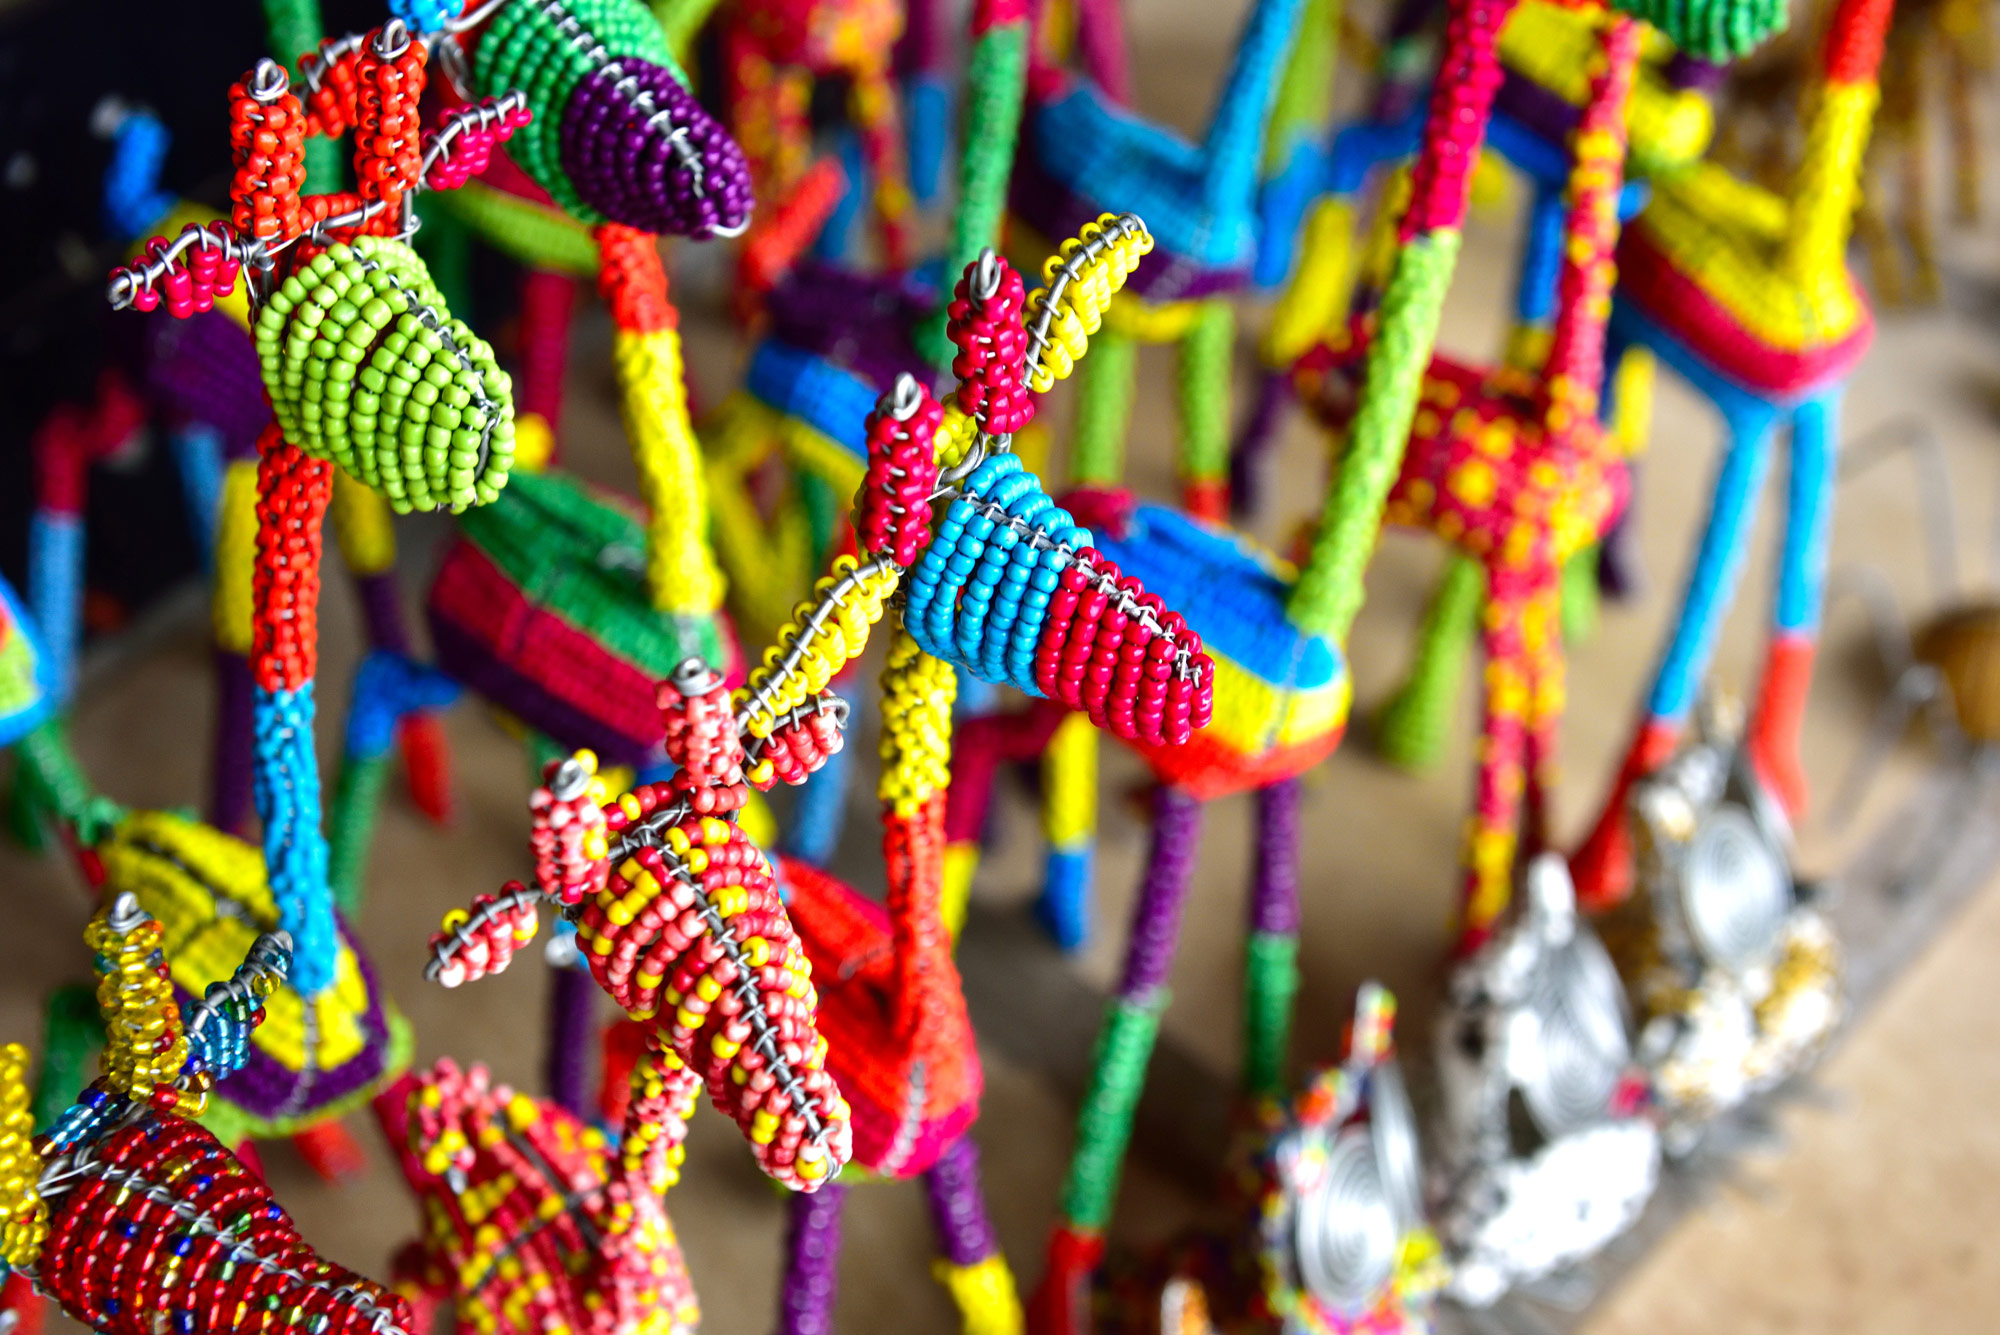 10 Traditional Souvenirs To Buy In South Africa